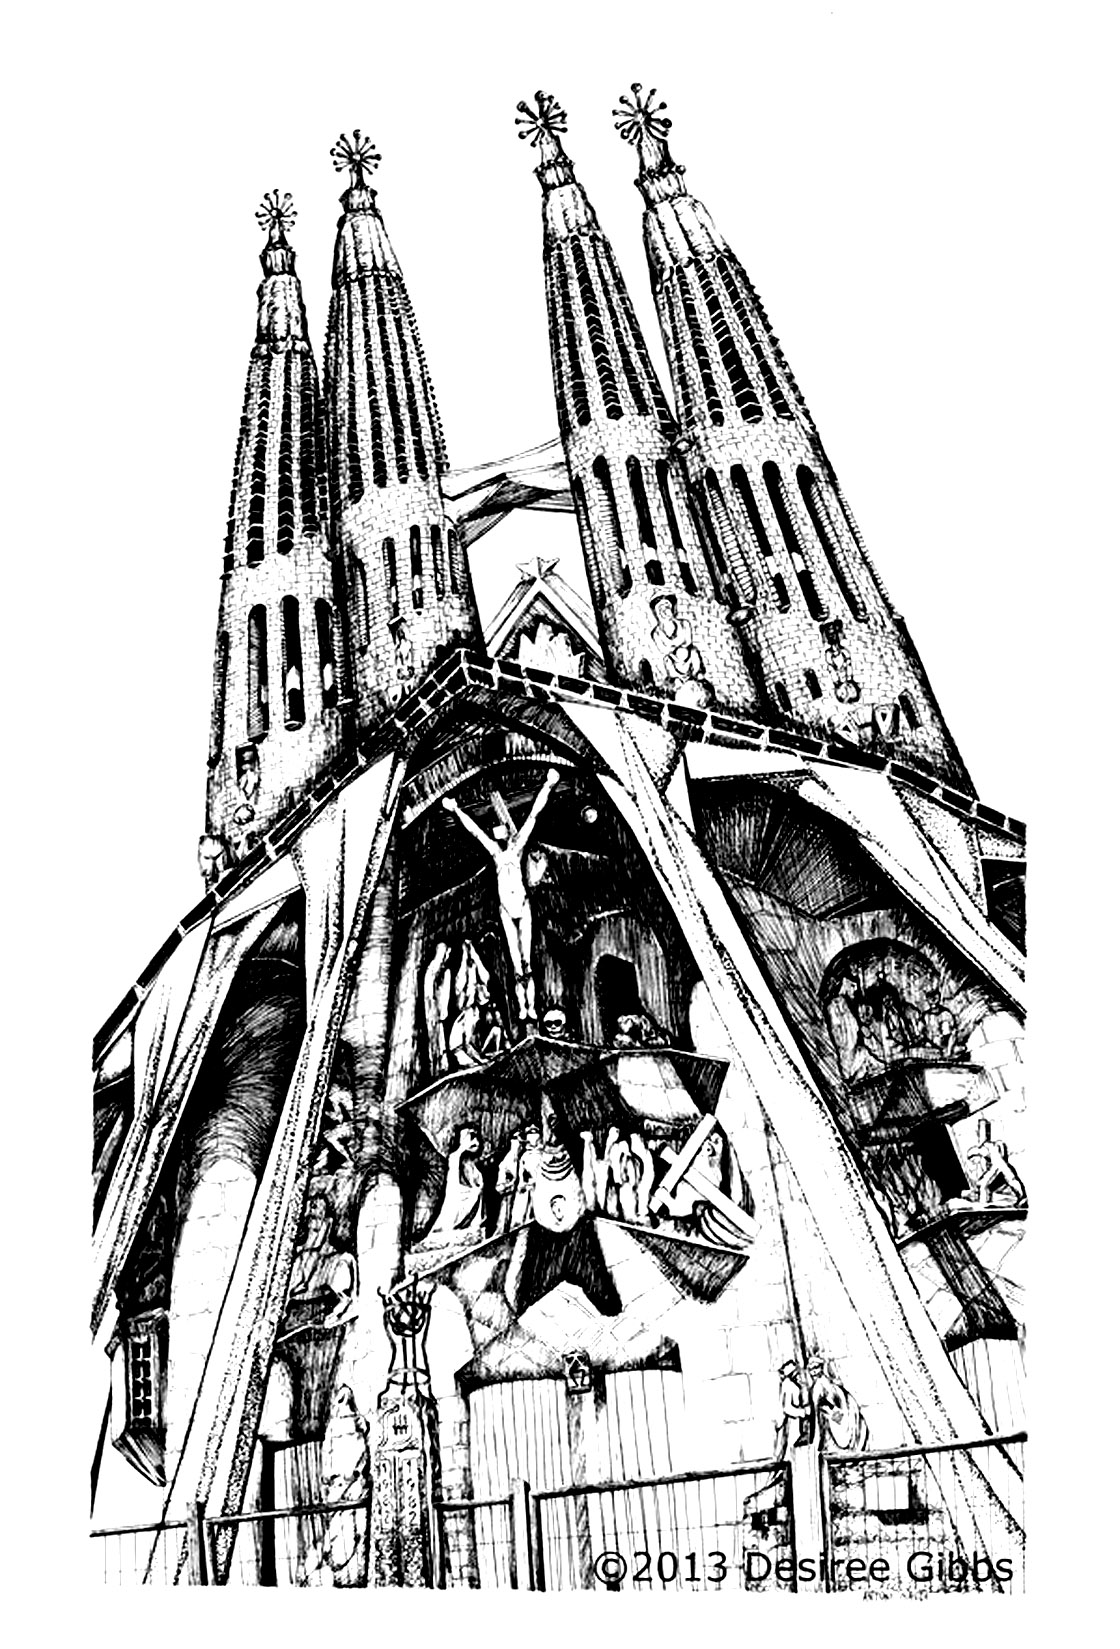 Drawing of the Sagrada familia by Gaudi in Barcelona